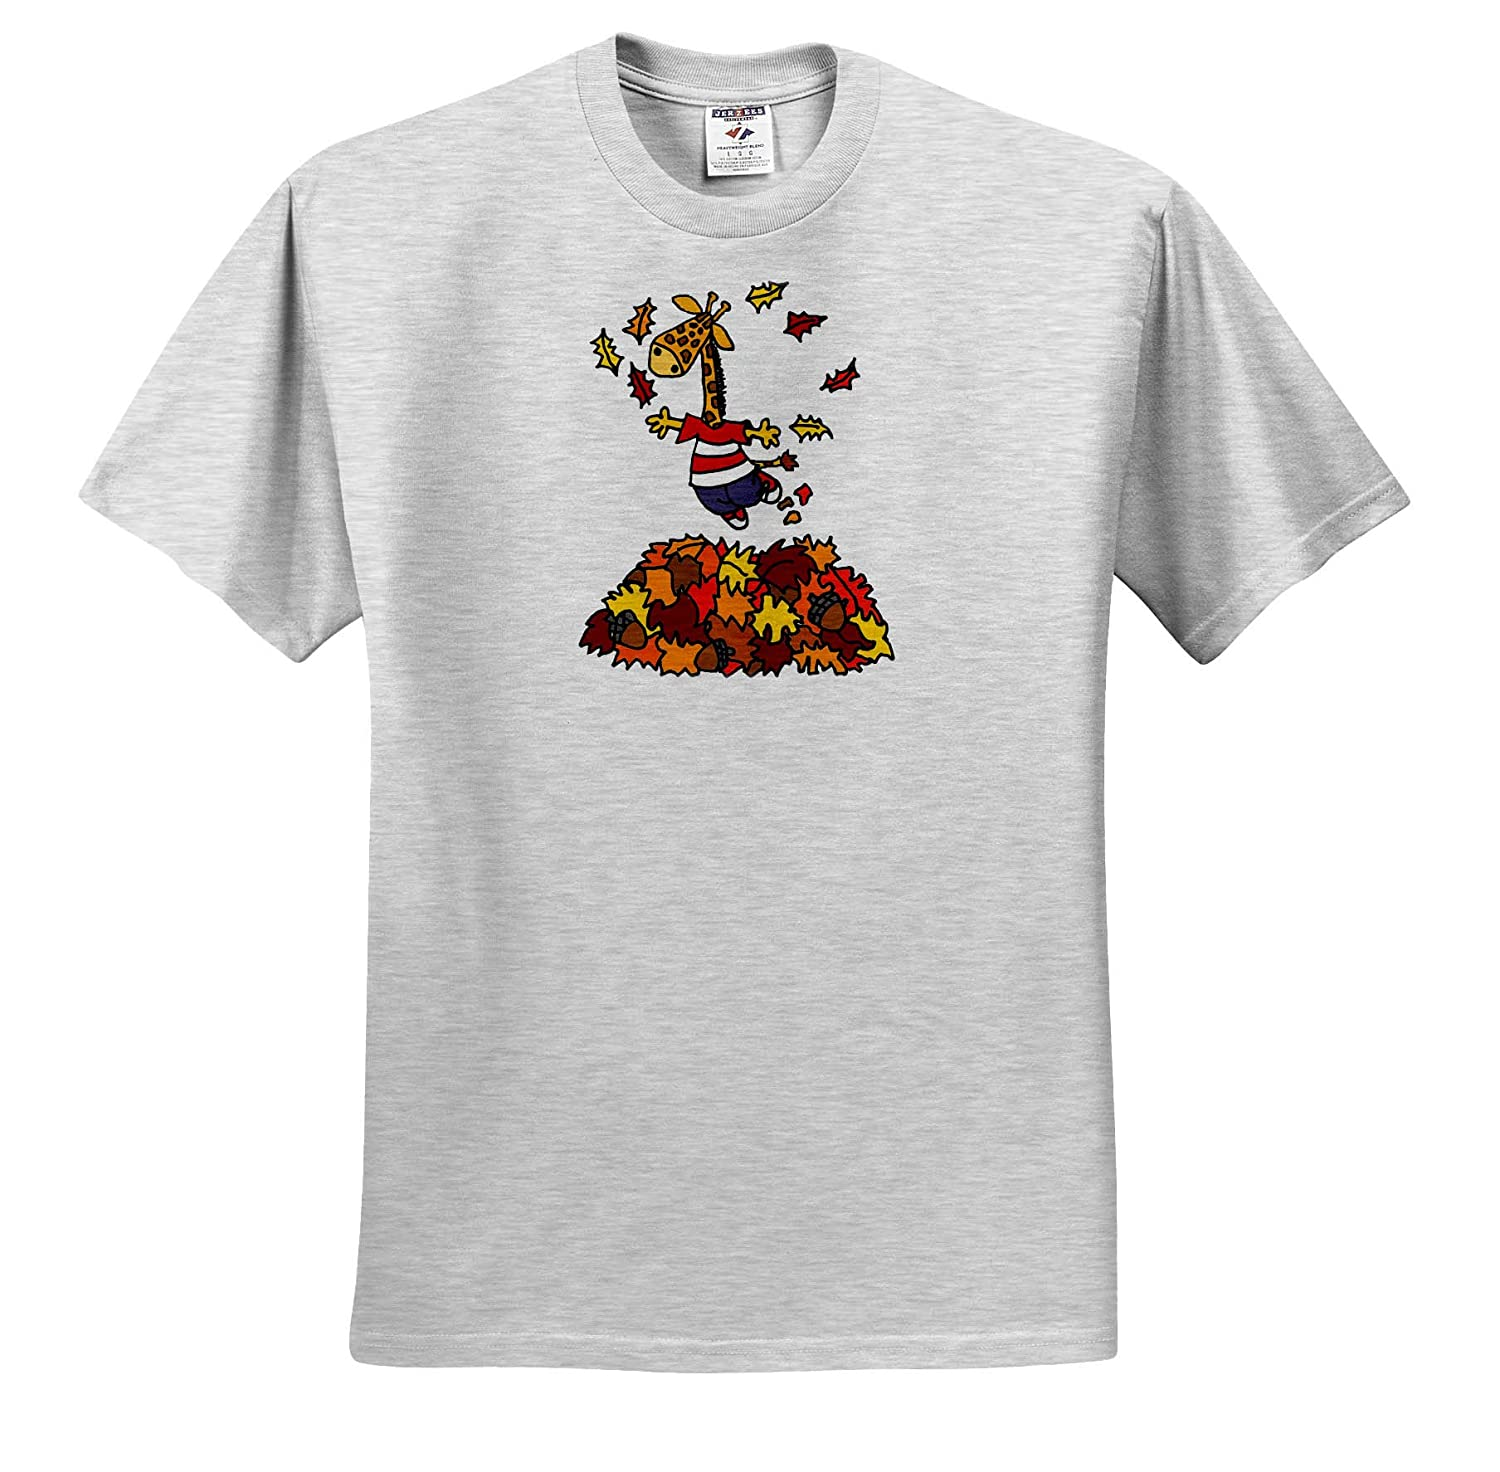 Funny T-Shirts Cute Funny Giraffe Jumping in Leaf Pile Cartoon 3dRose All Smiles Art